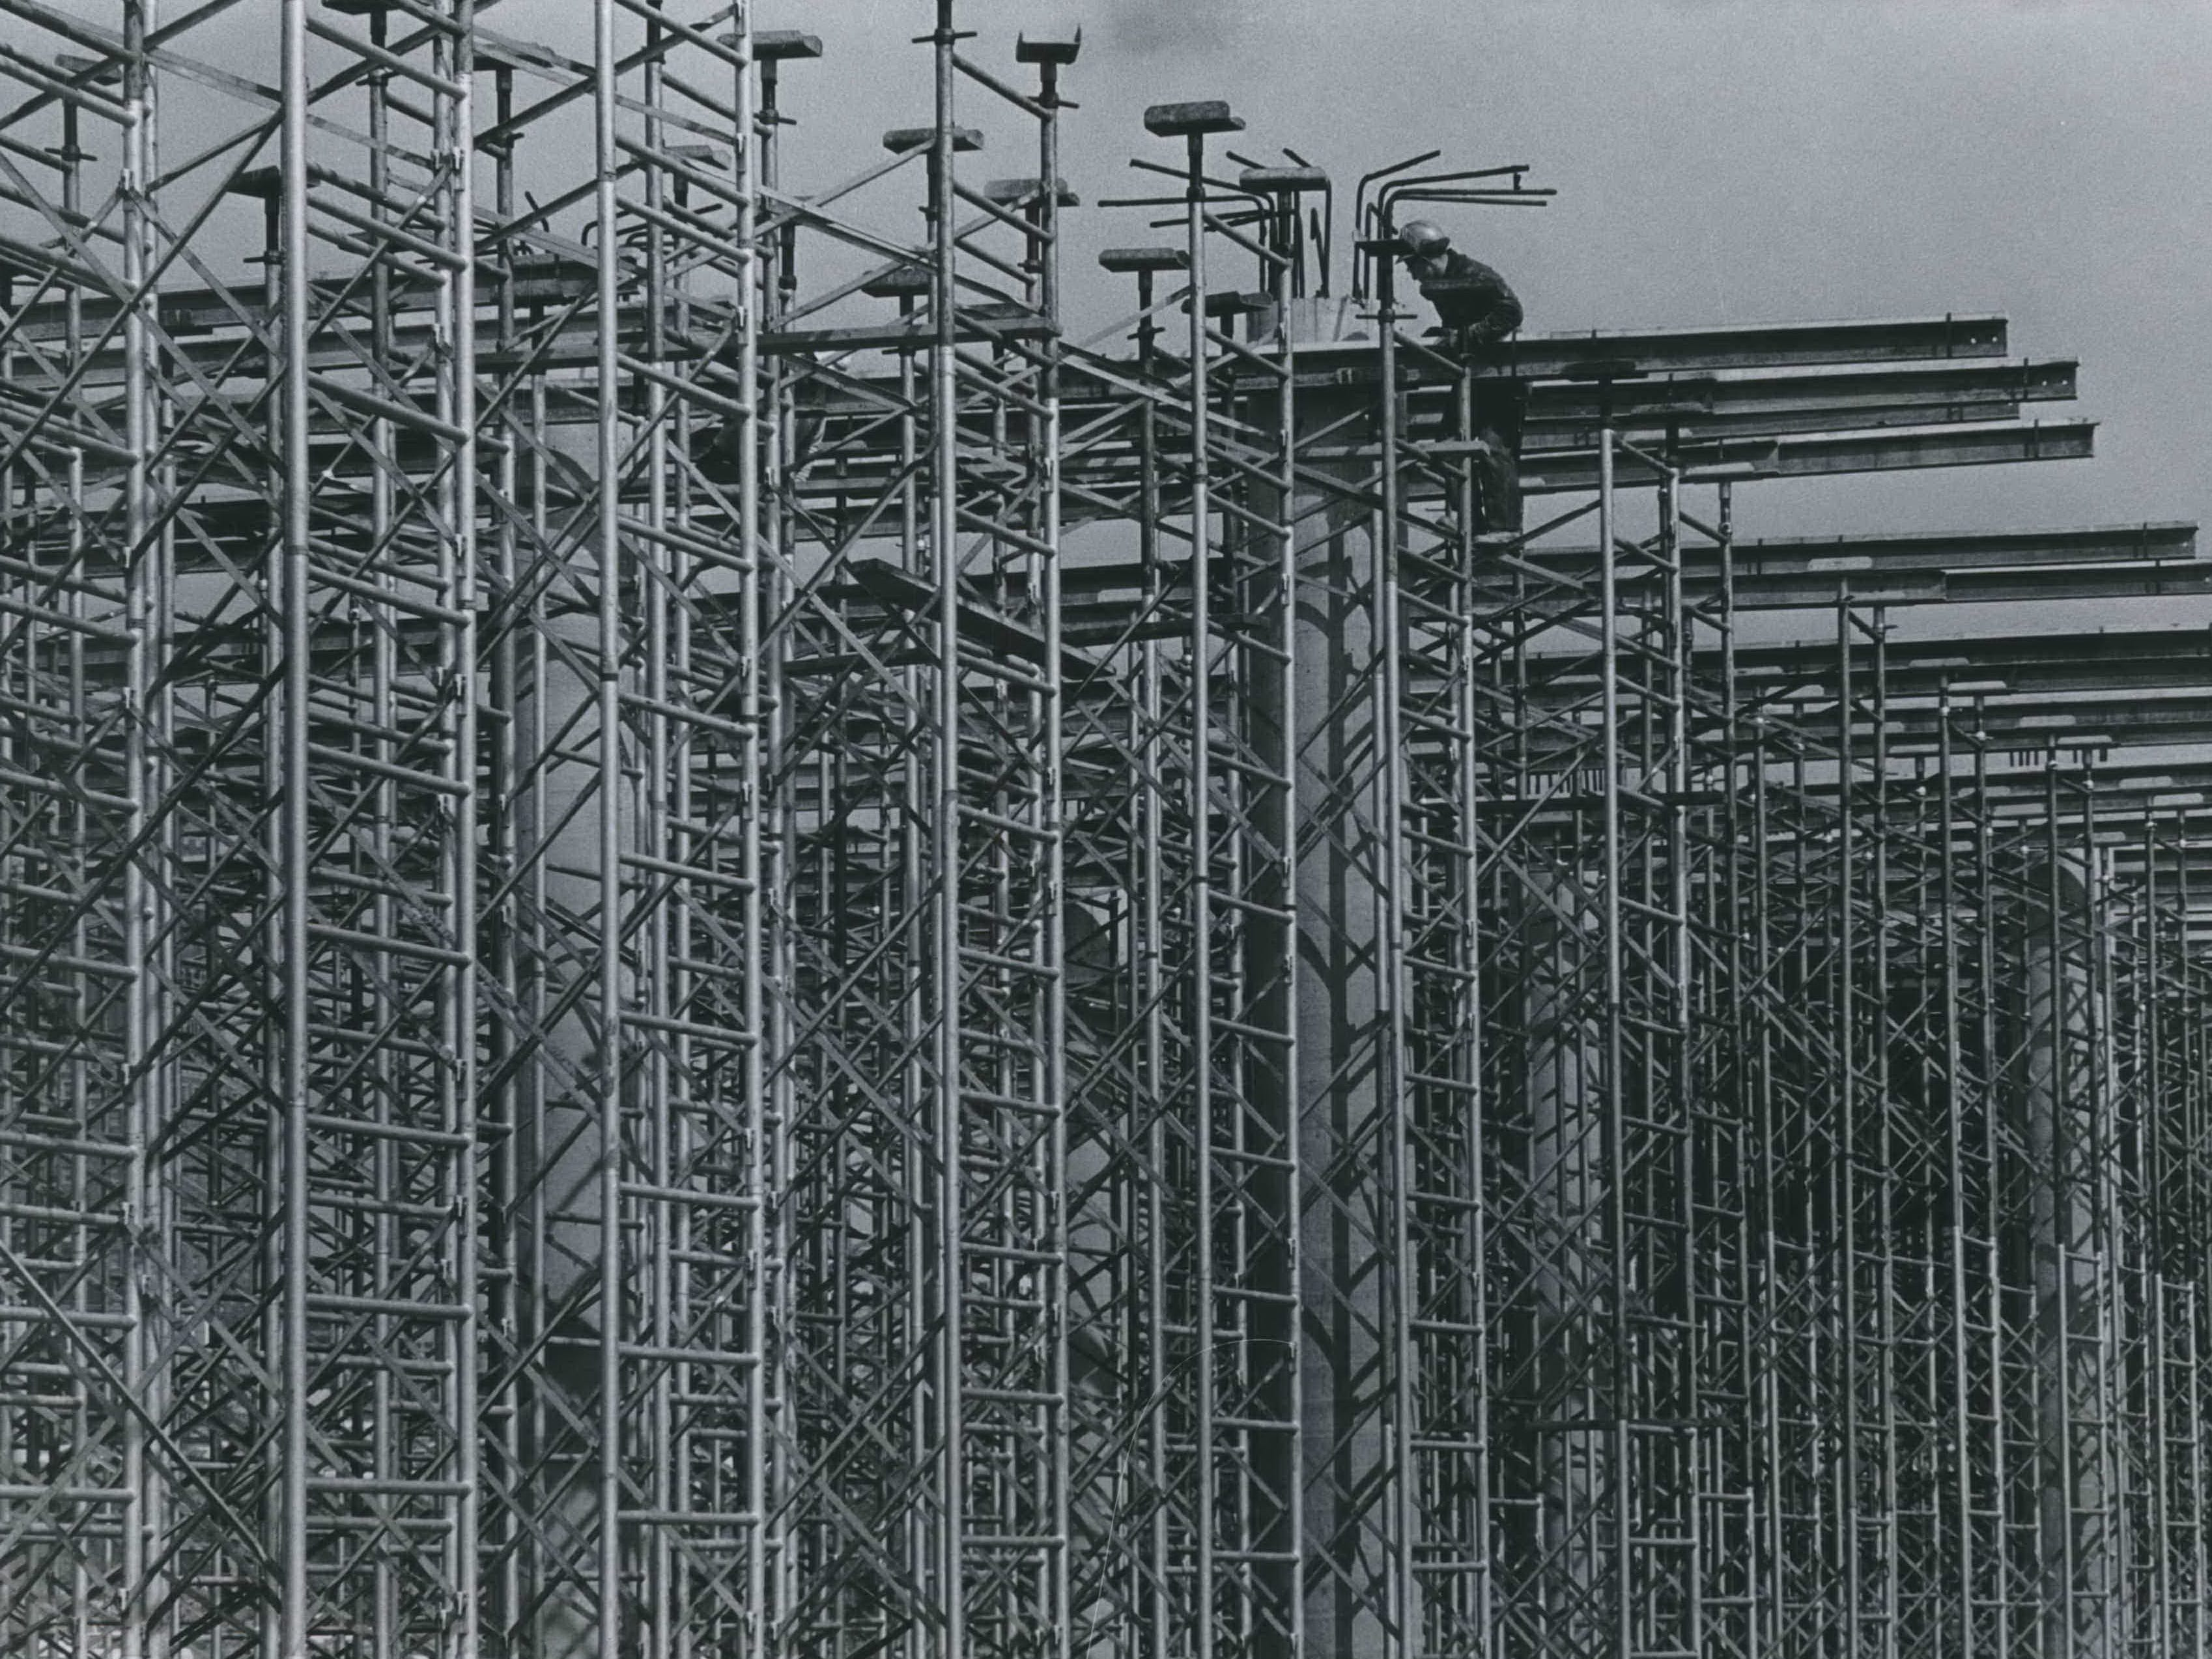 Scaffolding is being pieced together like a giant Erector set at the site of the Central Interchange in downtown Milwaukee. The scaffolding was to support forms for a future concrete roadway that will carry traffic high above the ground. This photo was published in the April 1, 1965, Milwaukee Journal.